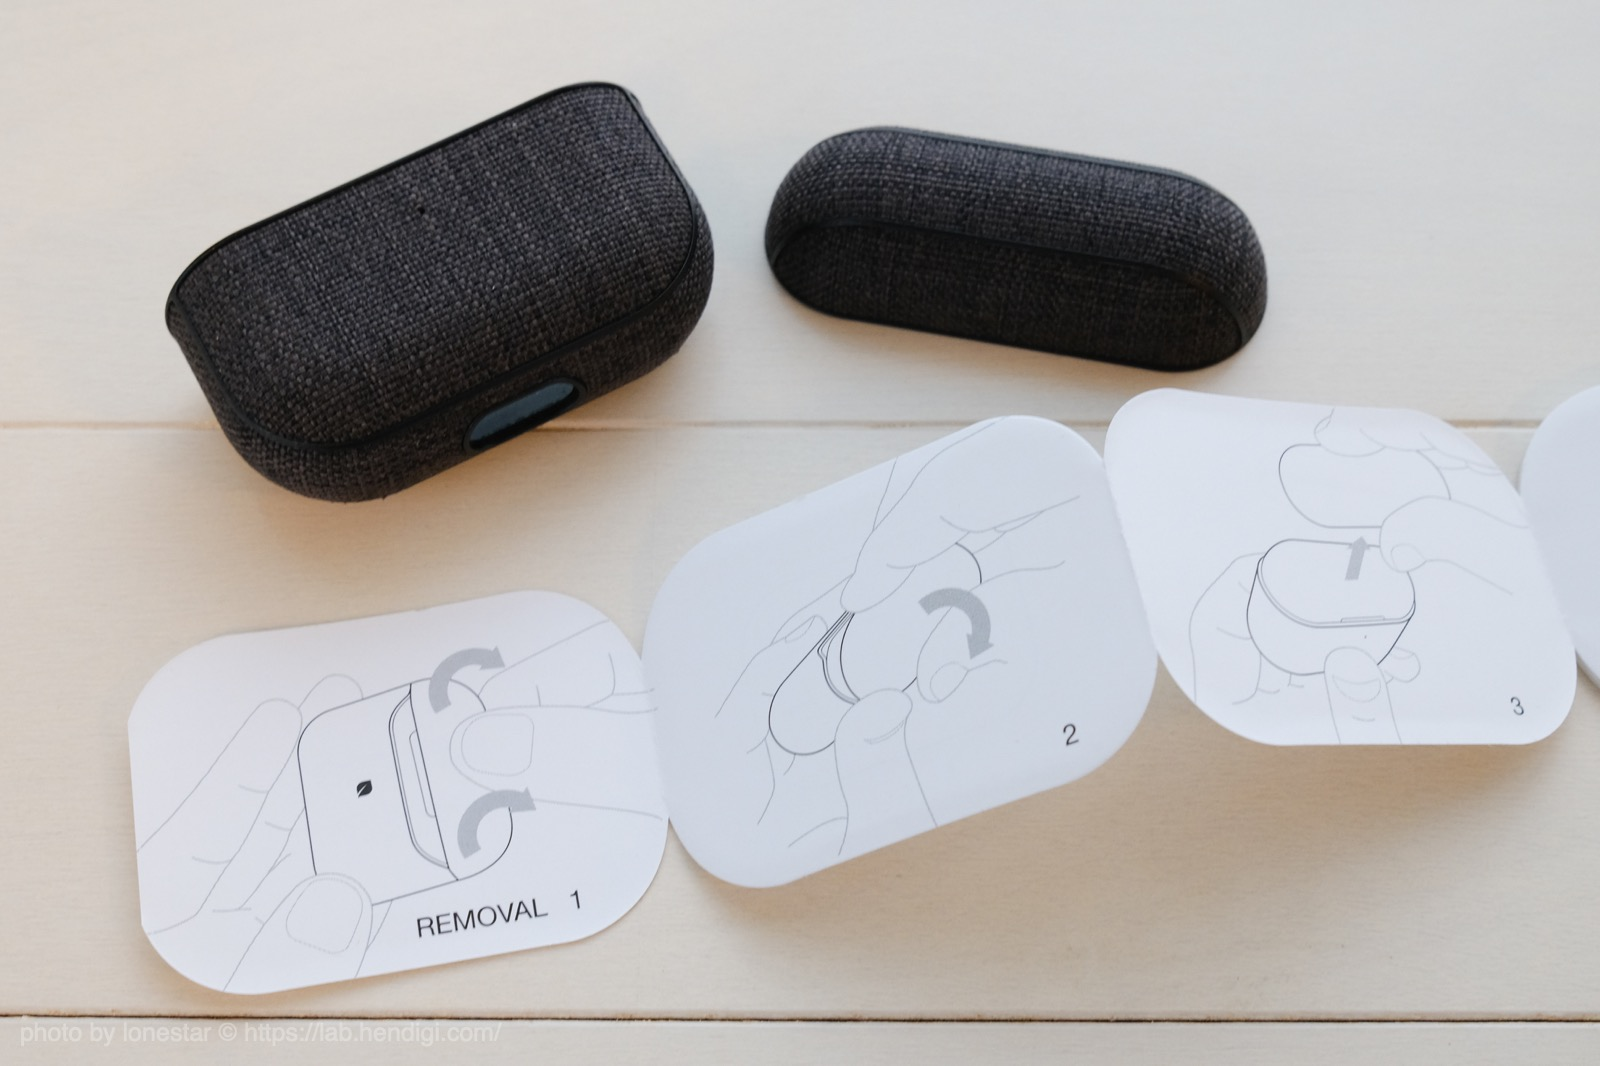 Incase AirPods Pro Case with Woolenex 外し方